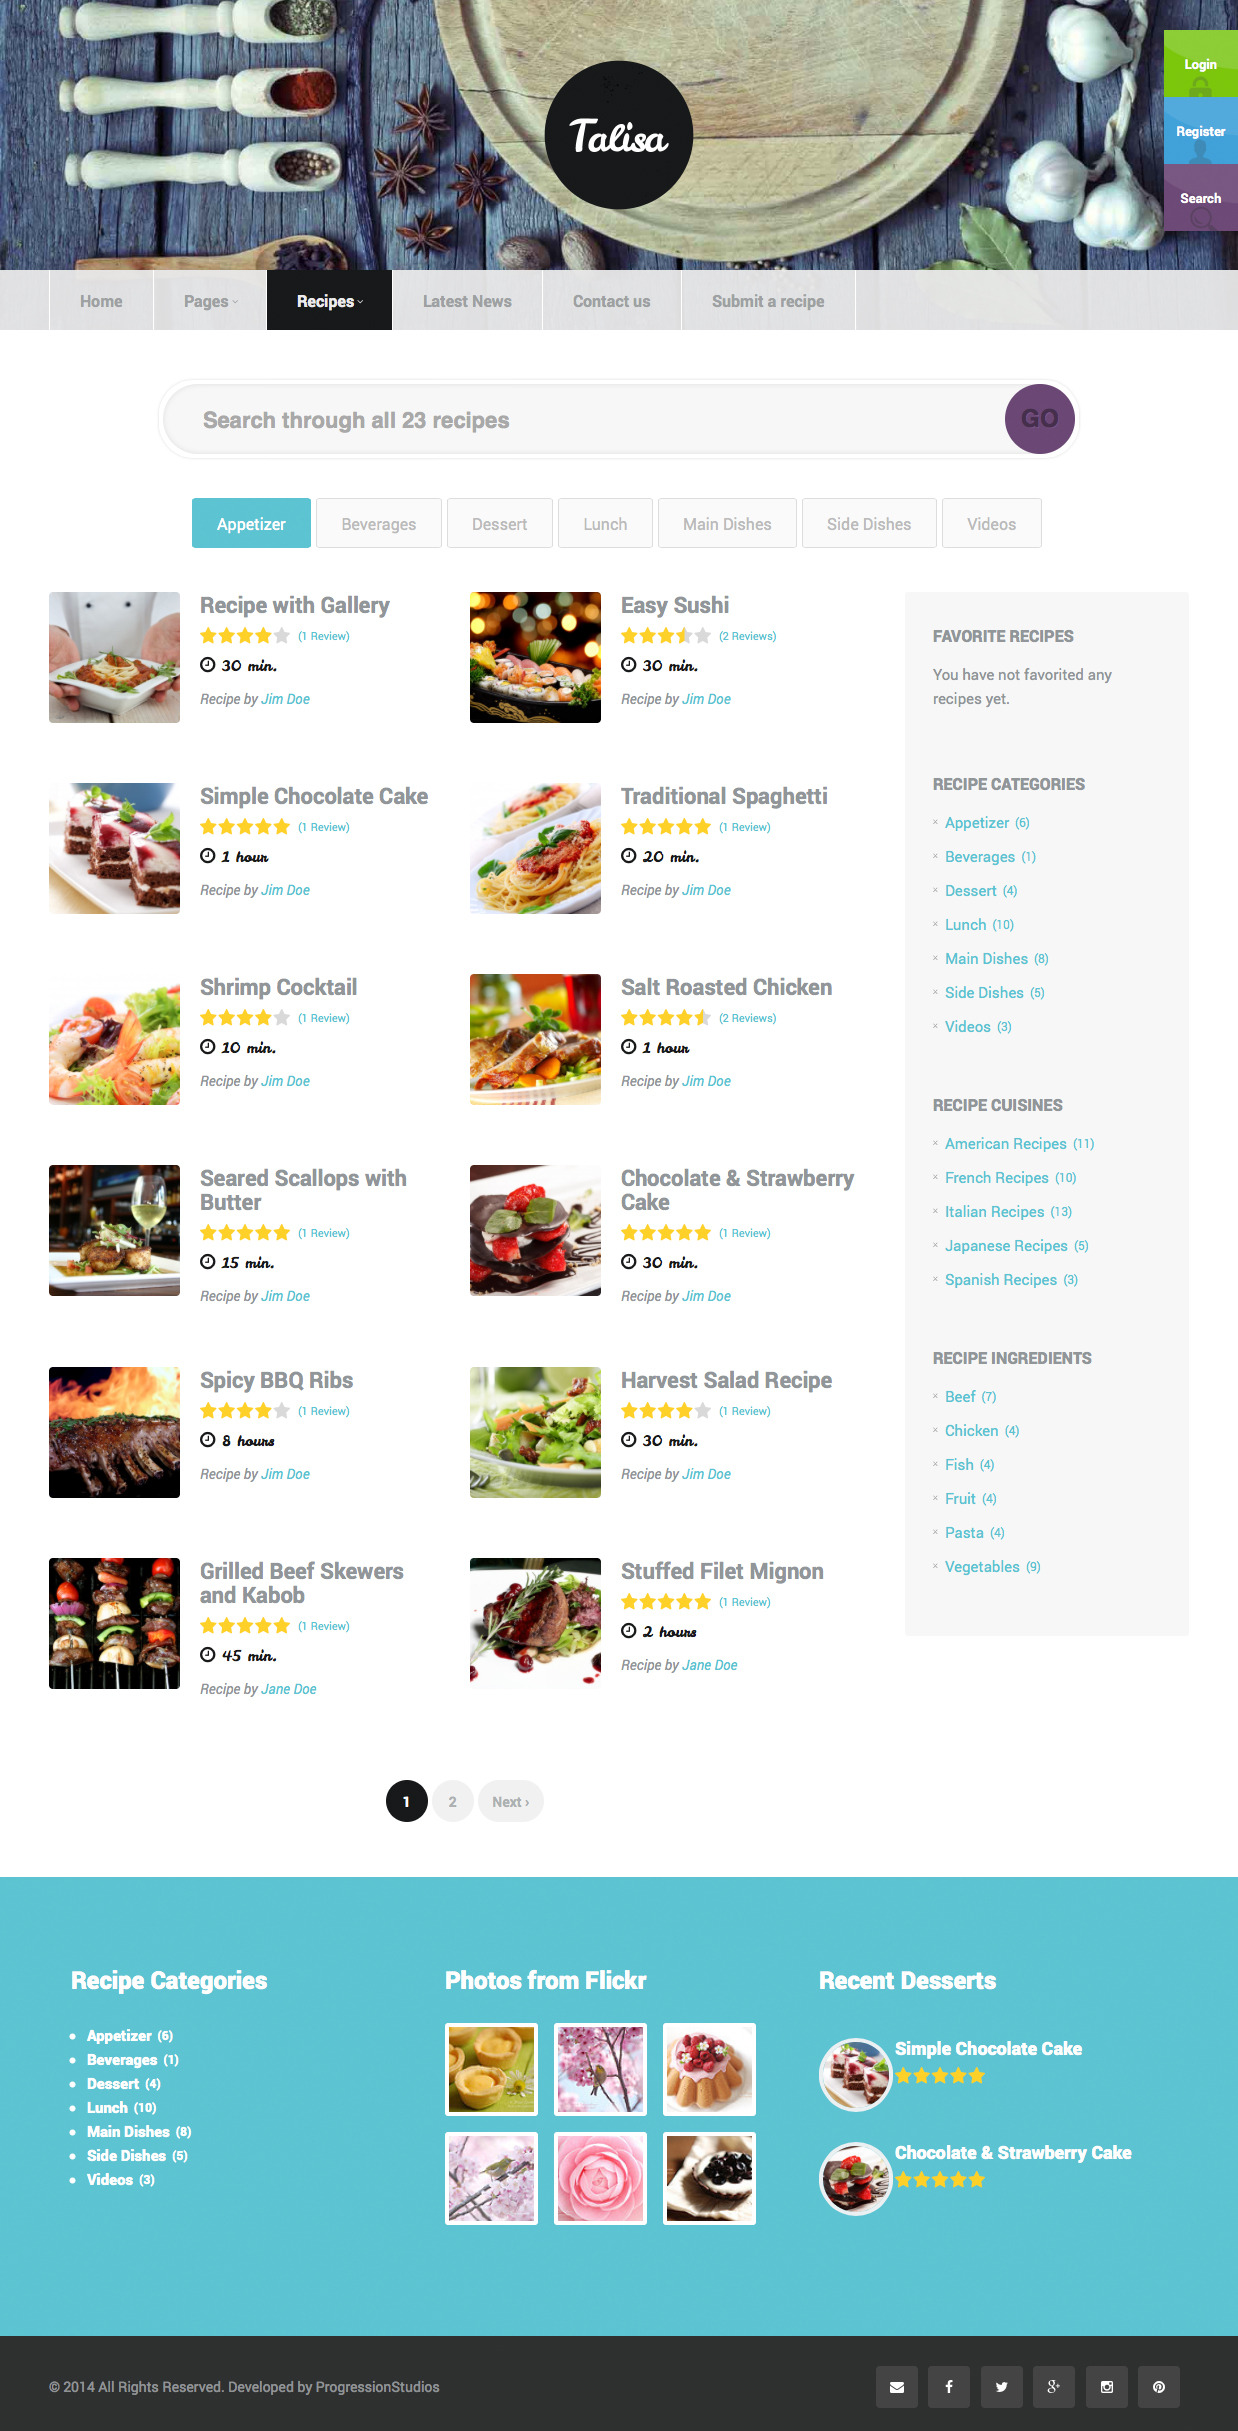 Talisa food recipes wordpress theme by progressionstudios screenshots2 recipe listg forumfinder Image collections